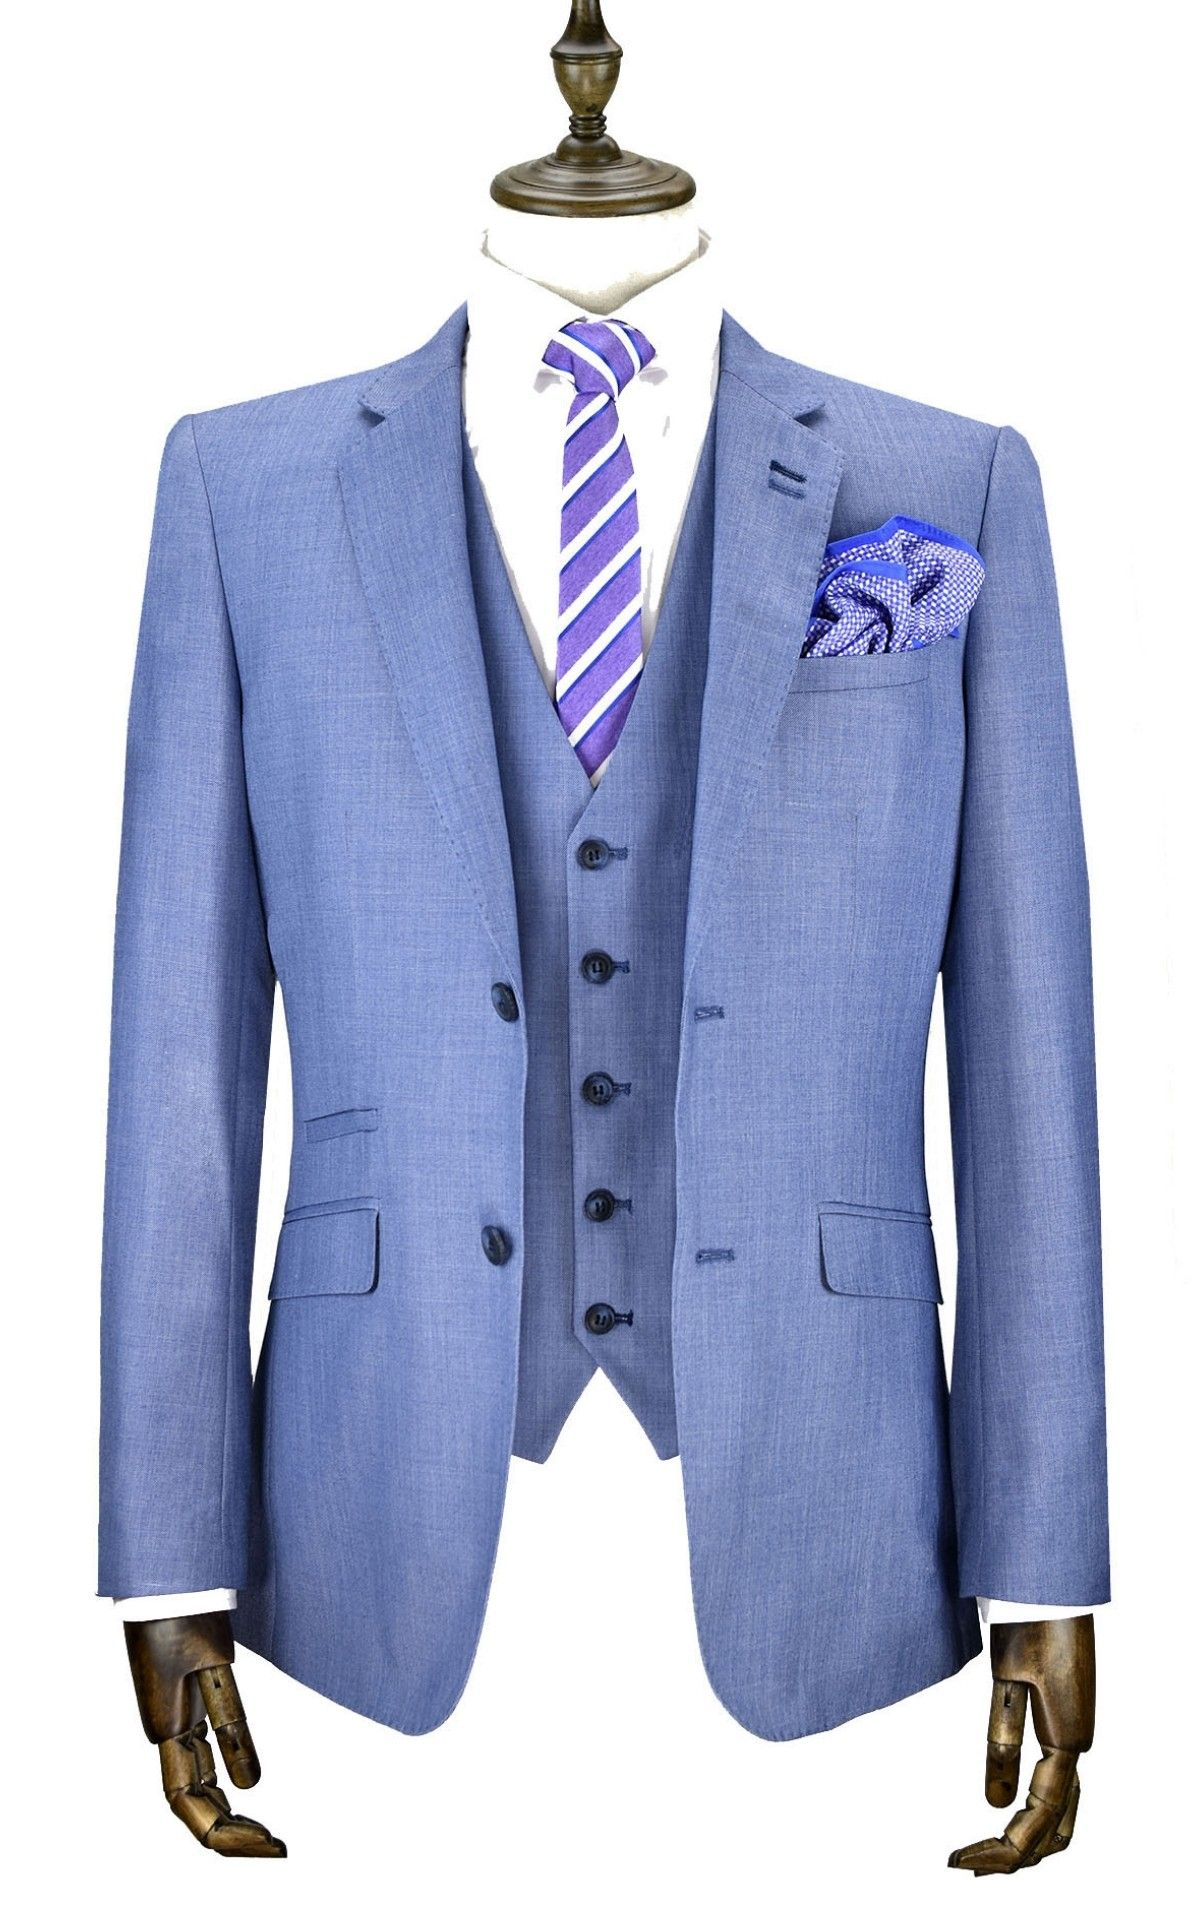 Blue Jay 3 Piece Suit Www Menzsuits Co Uk Tweed Wedding Suits Wedding Suits Suits